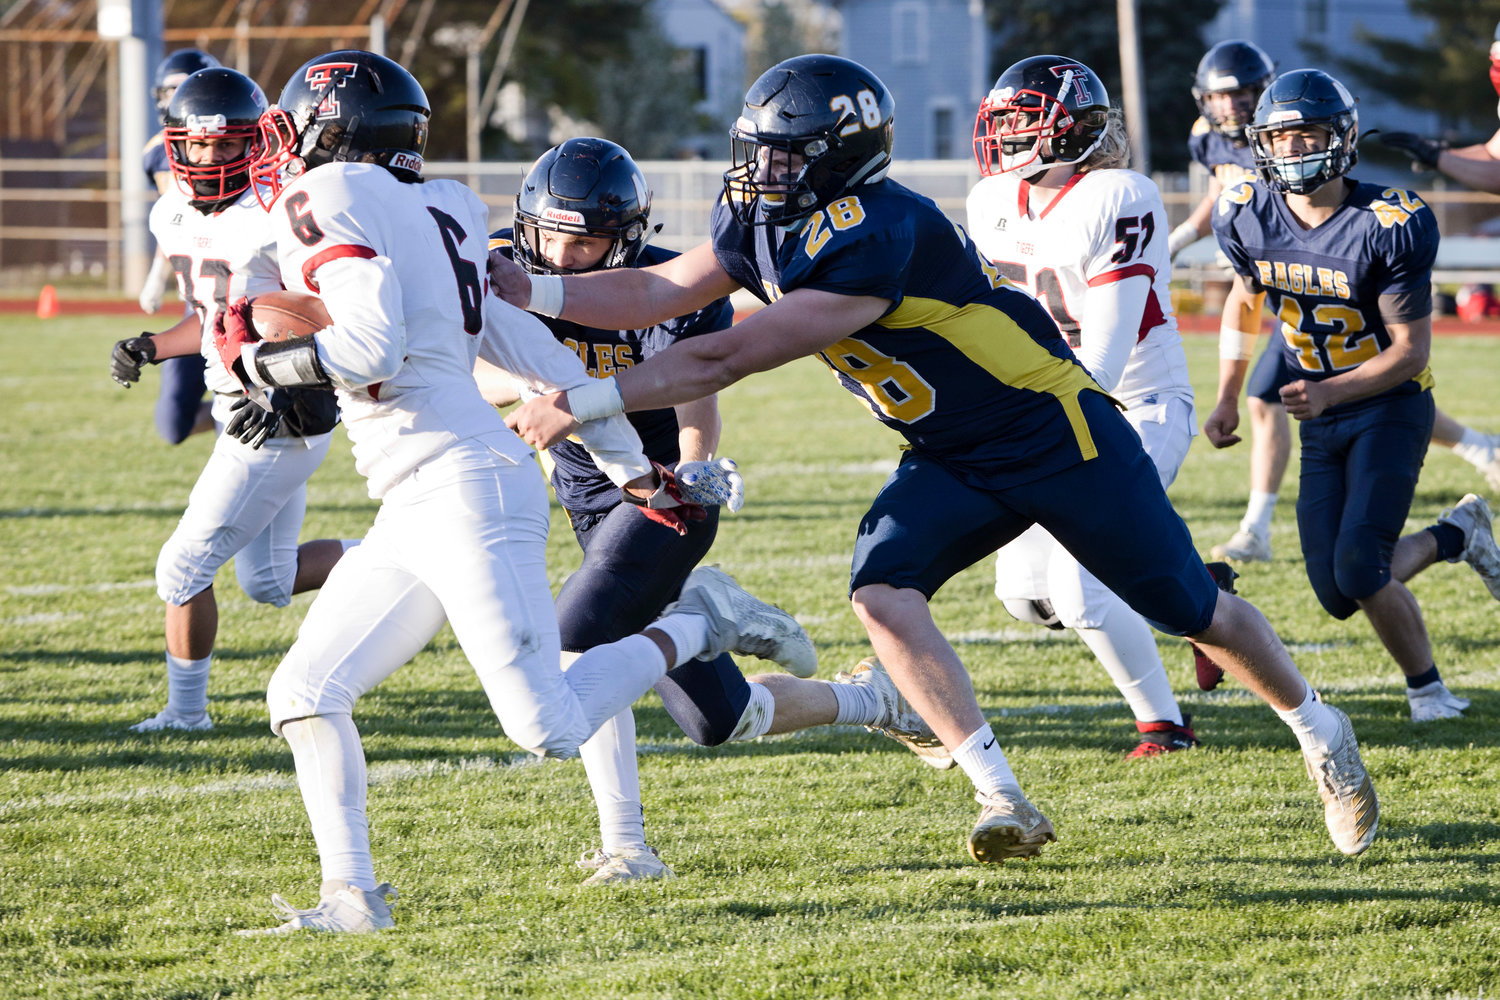 Barrington's Luke Gorham slows down a Tolman opponent during the Division II semifinals, Friday.